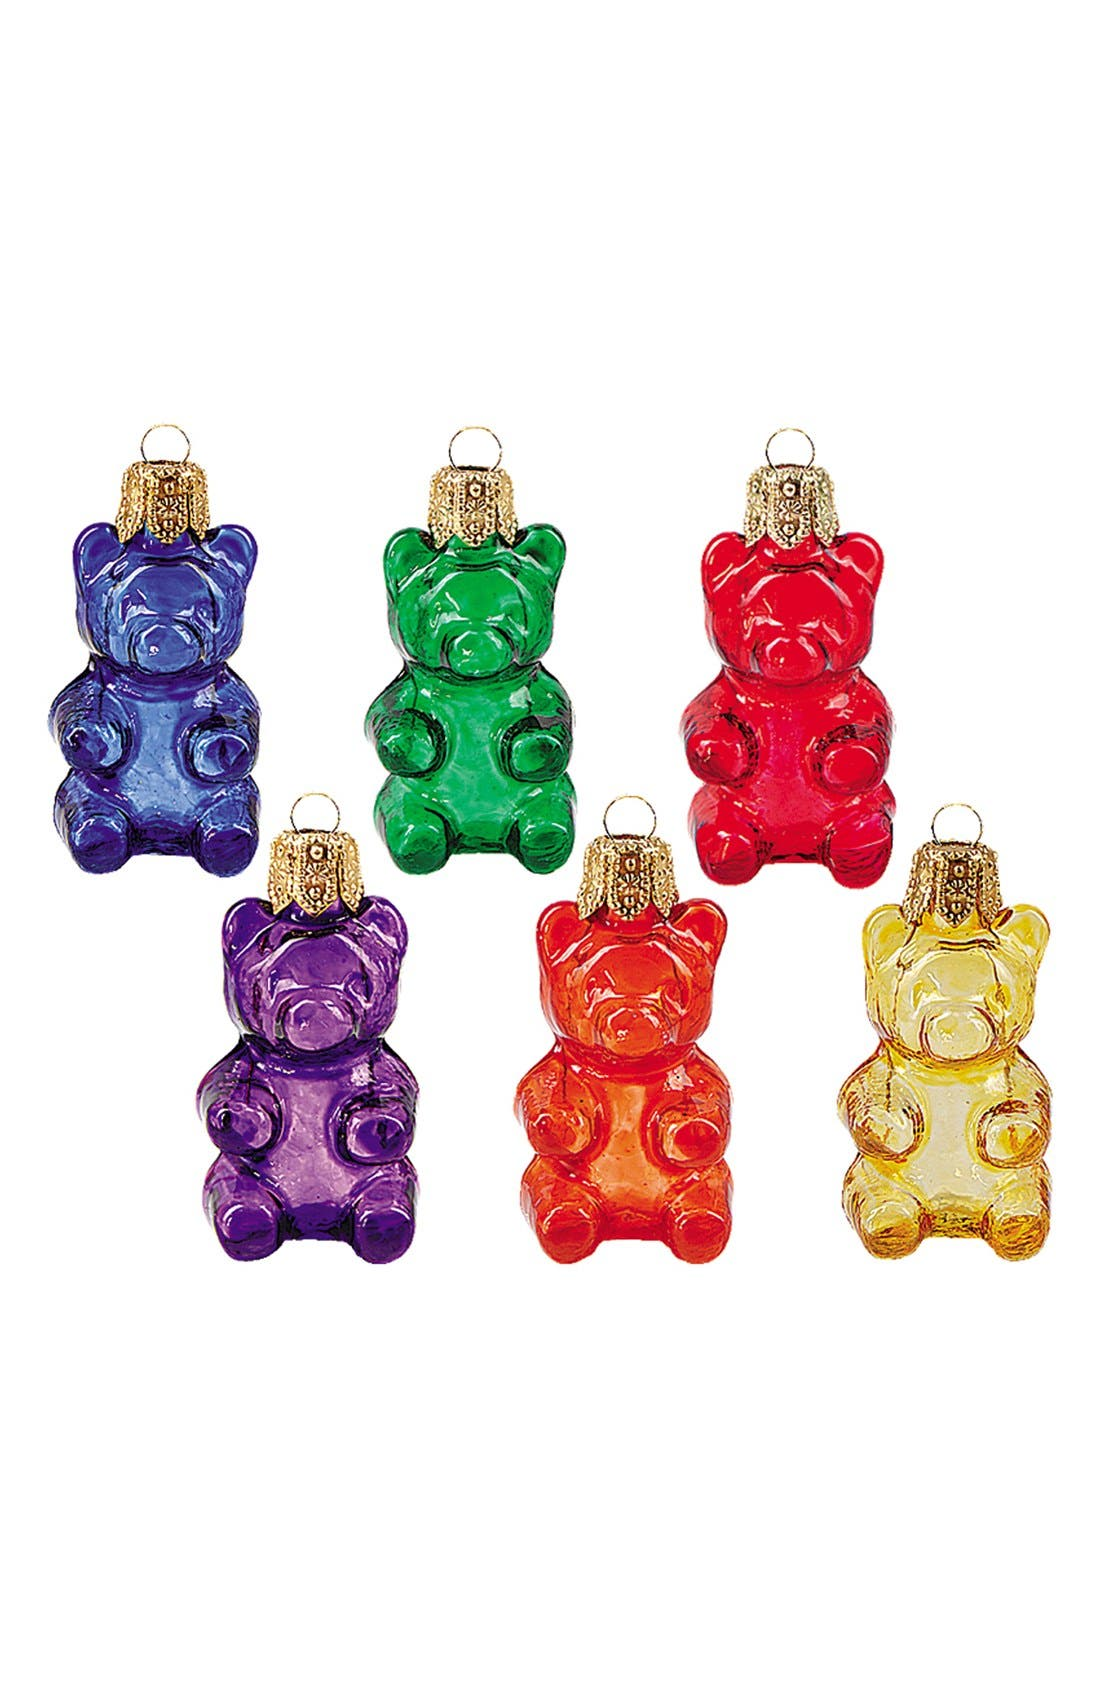 Nordstrom at Home 'Gummy Bears' Handblown Glass Ornaments (Set of 6)